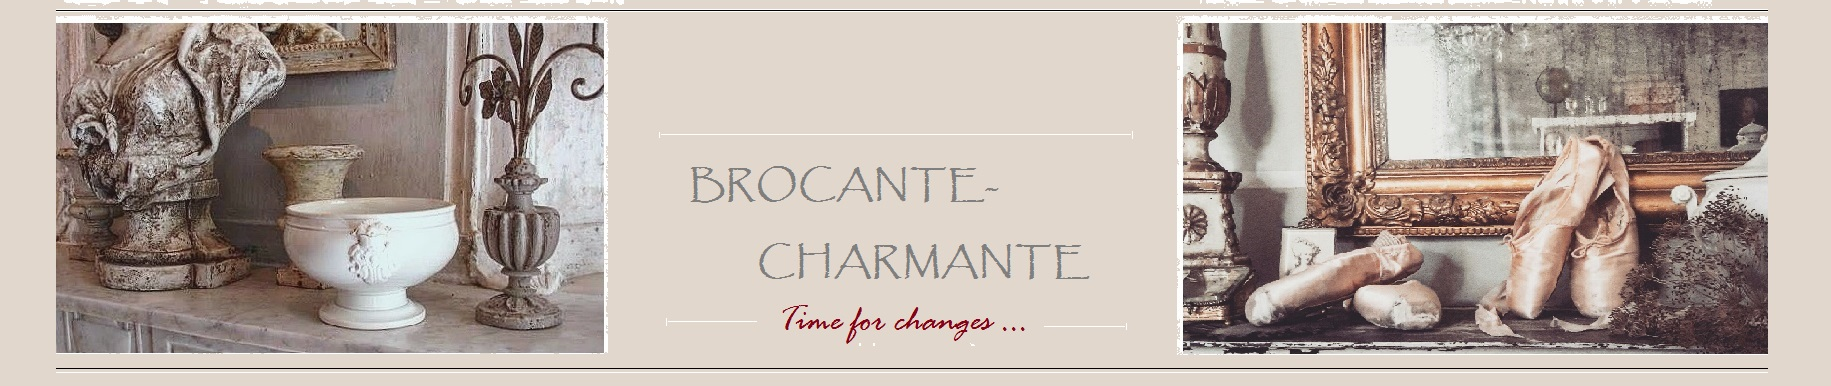 brocante charmante onlineshop brocante charmante onlineshop. Black Bedroom Furniture Sets. Home Design Ideas